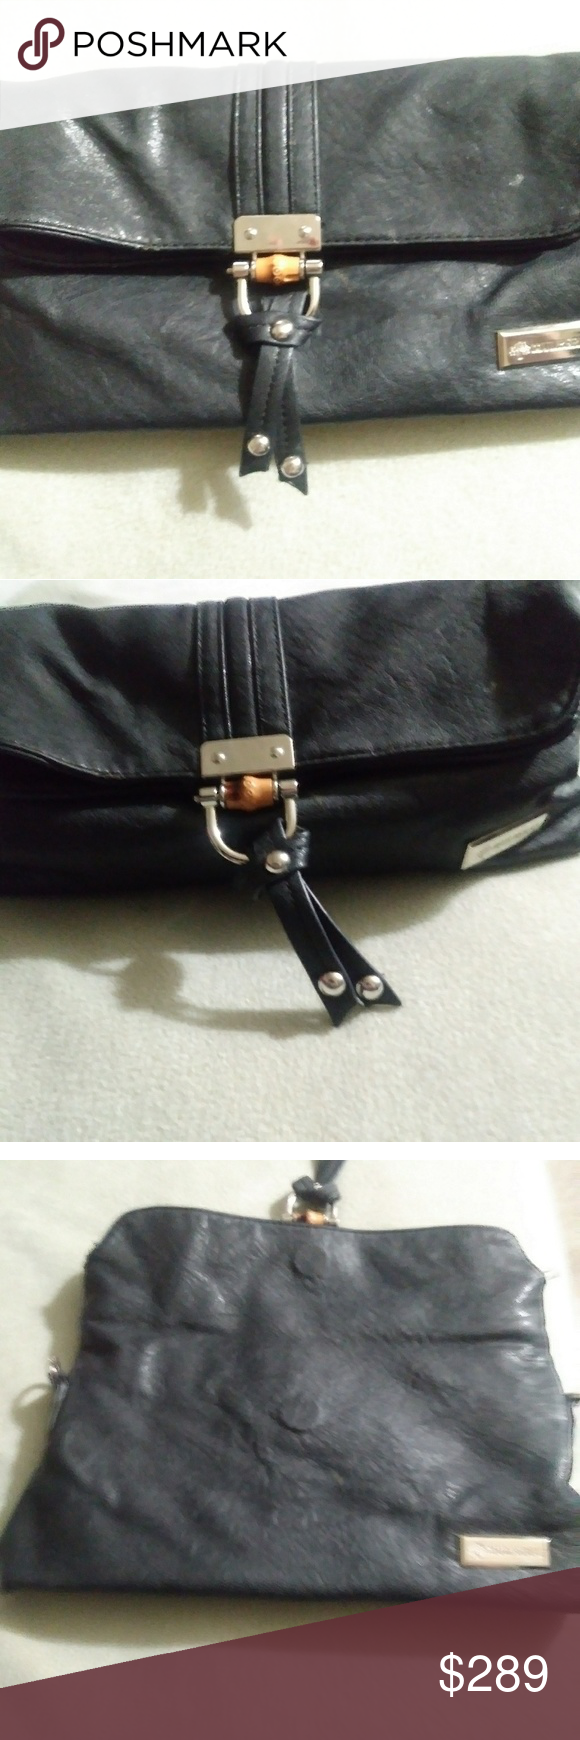 MulBerry purse Black Leather clutch. No strap.  A few flaws are pictured above. Mulberry Bags Clutches & Wristlets #mulberrybag MulBerry purse Black Leather clutch. No strap.  A few flaws are pictured above. Mulberry Bags Clutches & Wristlets #mulberrybag